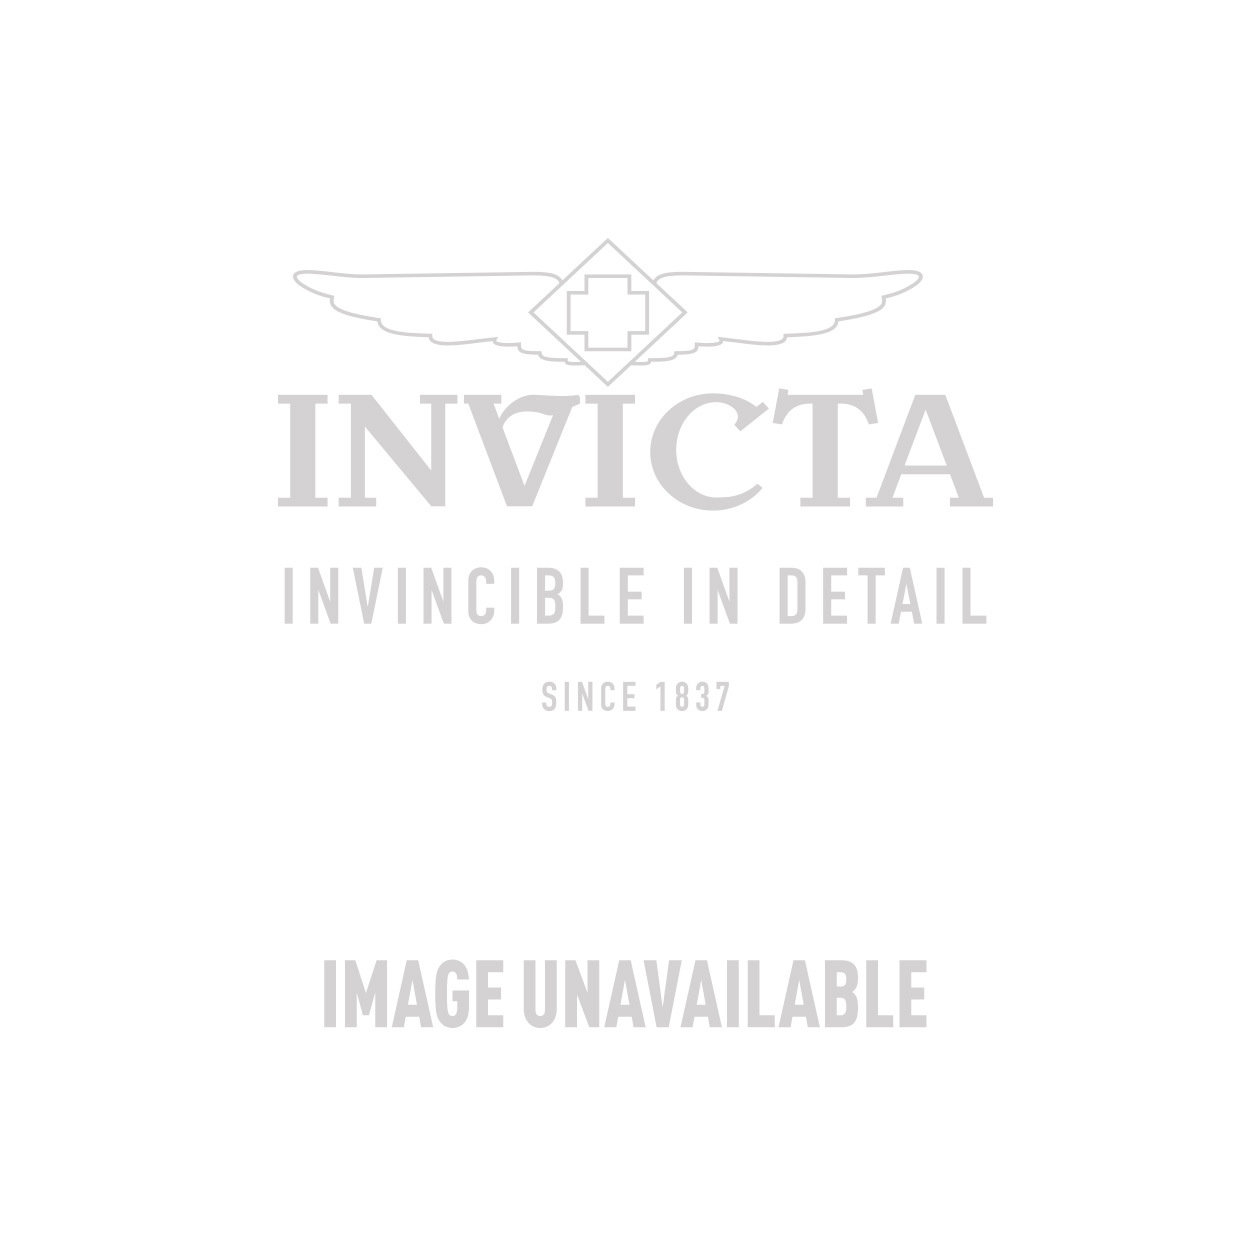 Invicta Specialty Quartz Watch - Black, Stainless Steel case with Black tone Polyurethane band - Model 12848